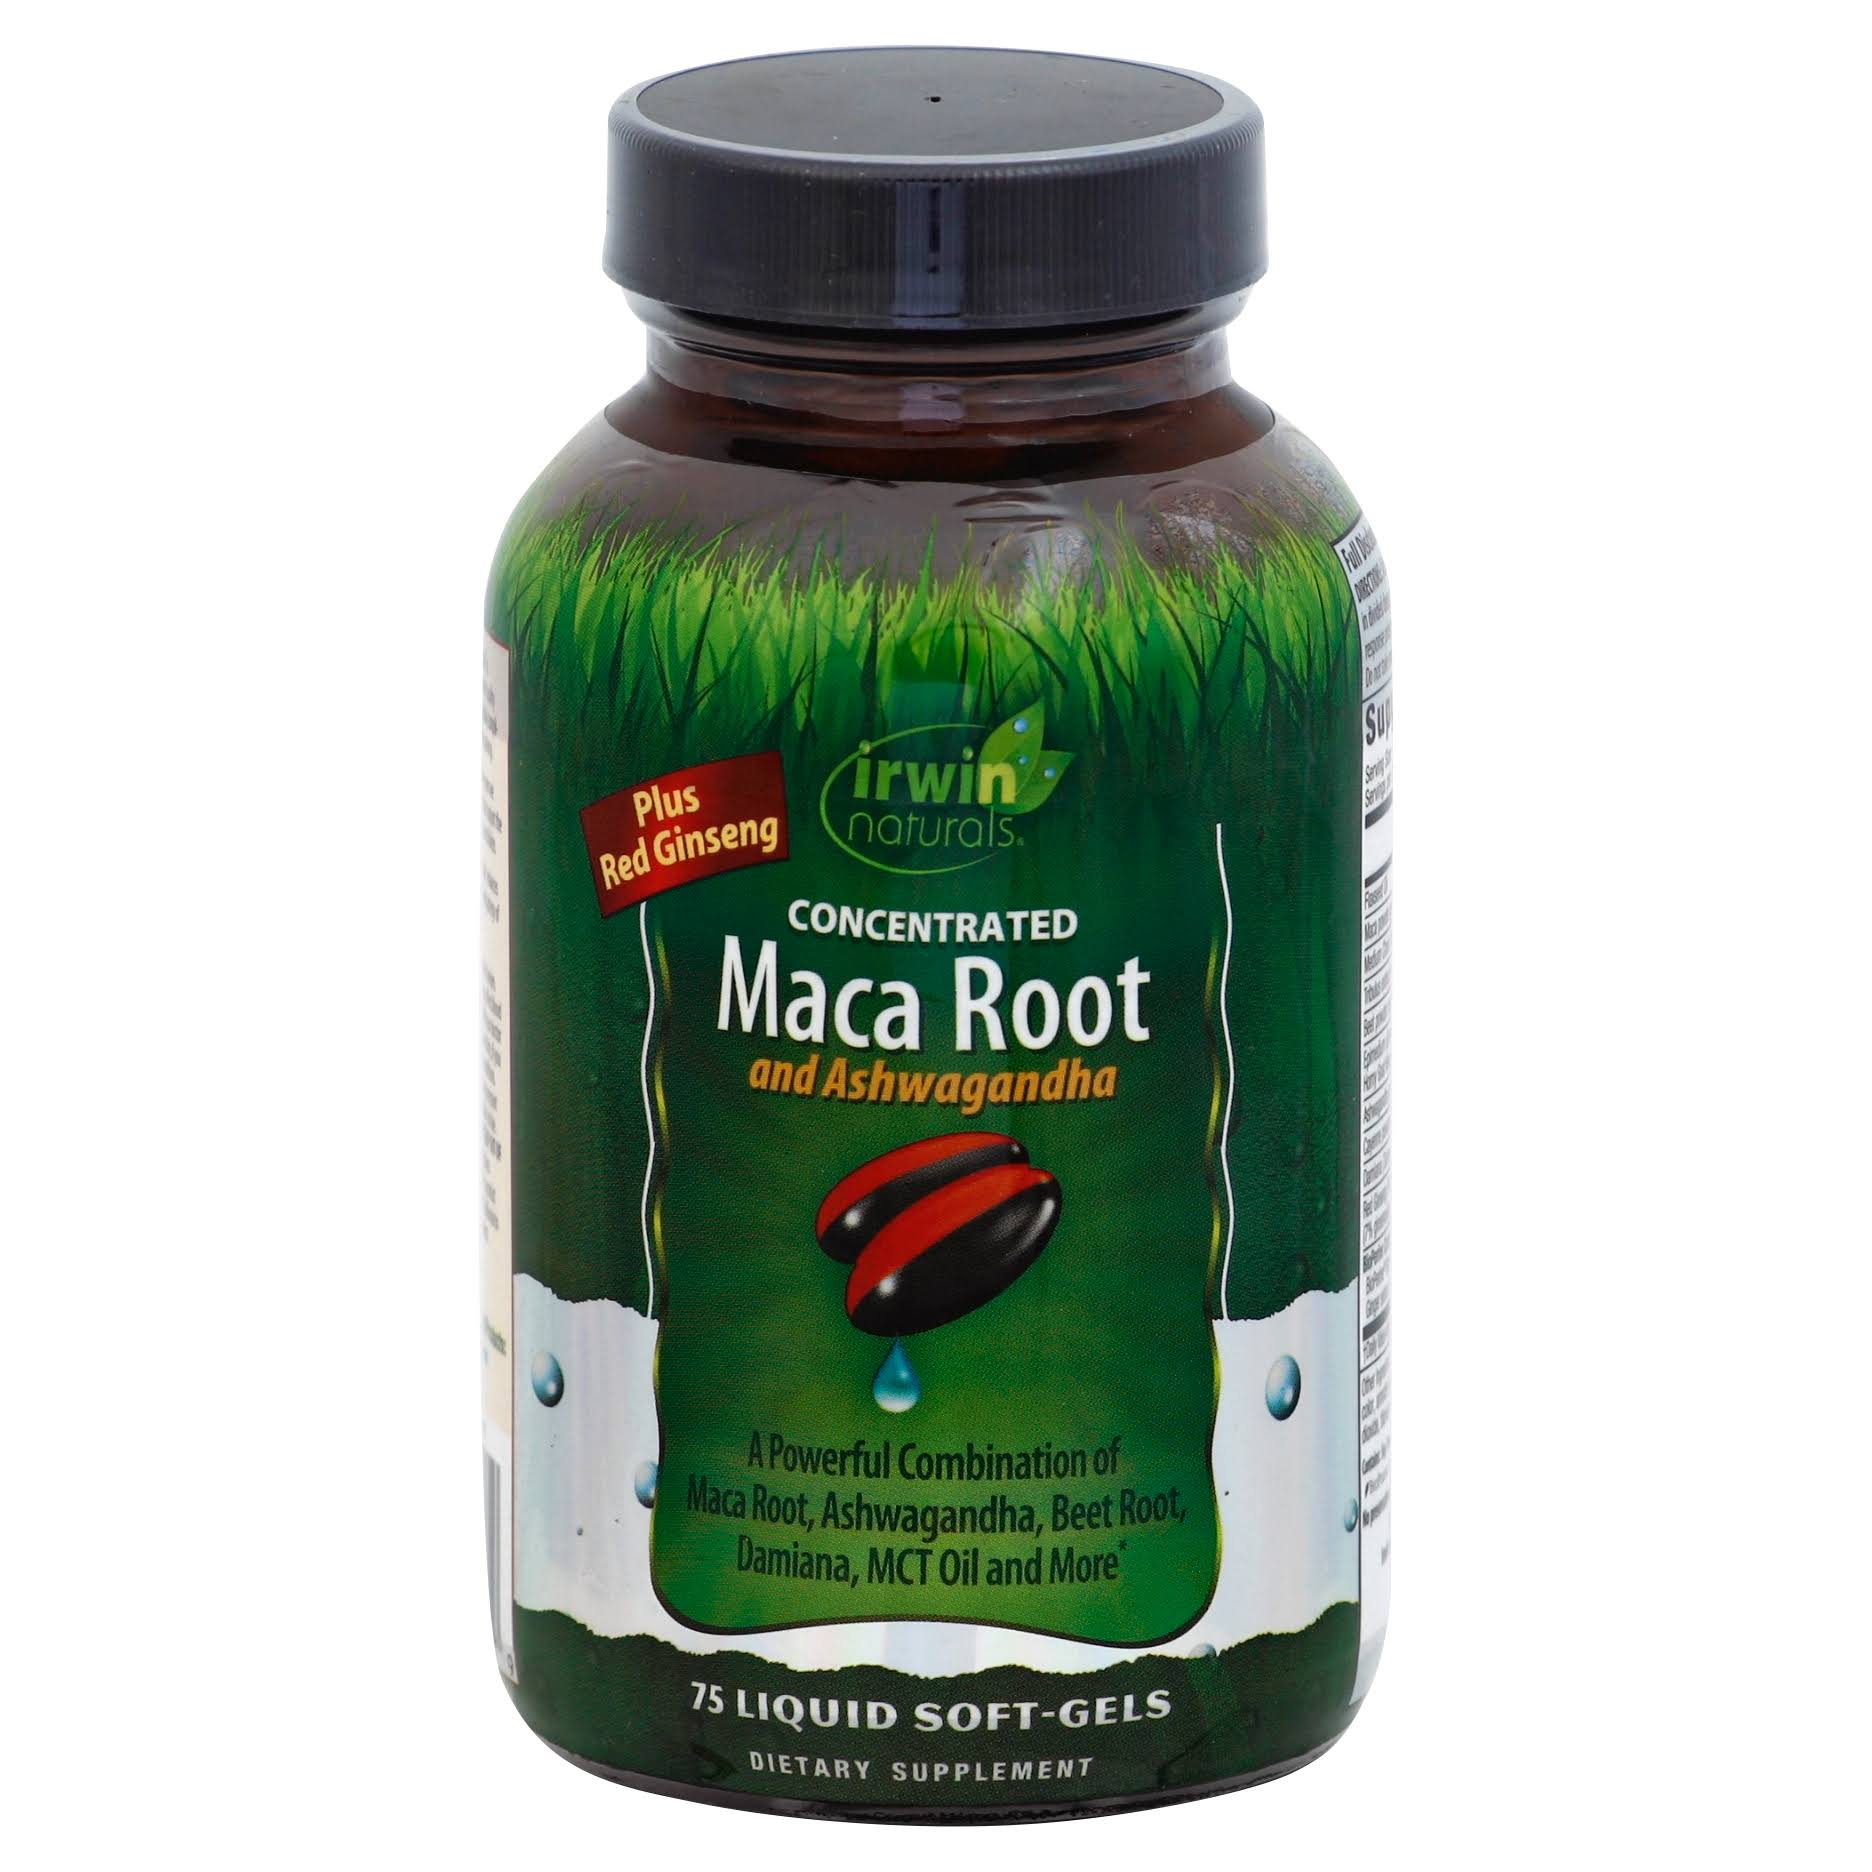 Irwin Naturals Maca Root, Concentrated, Liquid Soft-Gels - 75 soft-gels